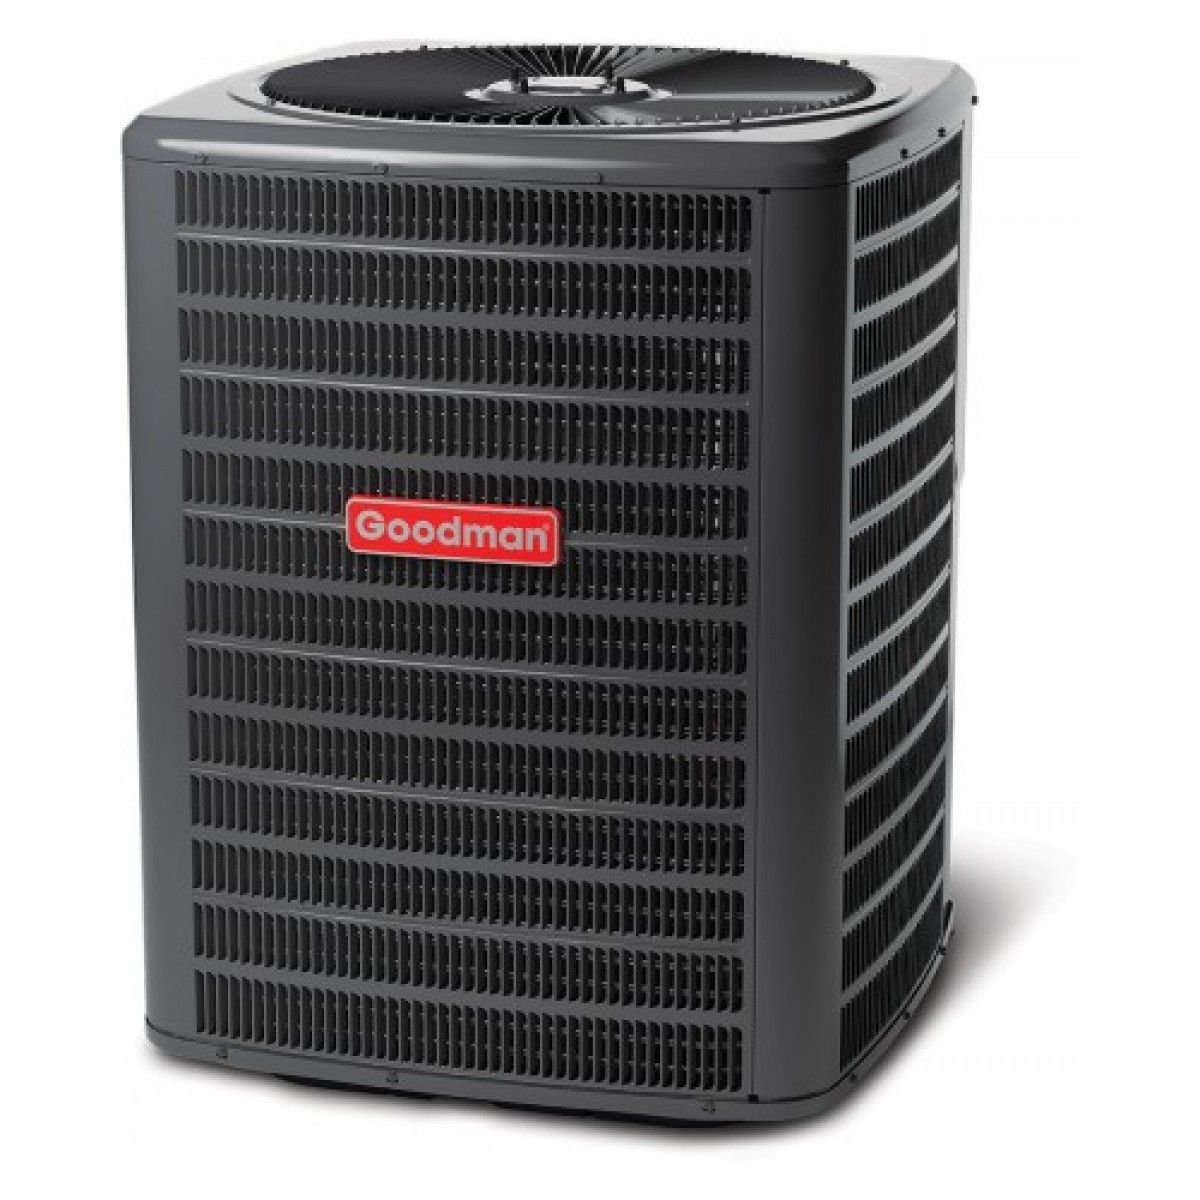 Goodman 3 0 Ton 14 Seer Heat Pump System One Time